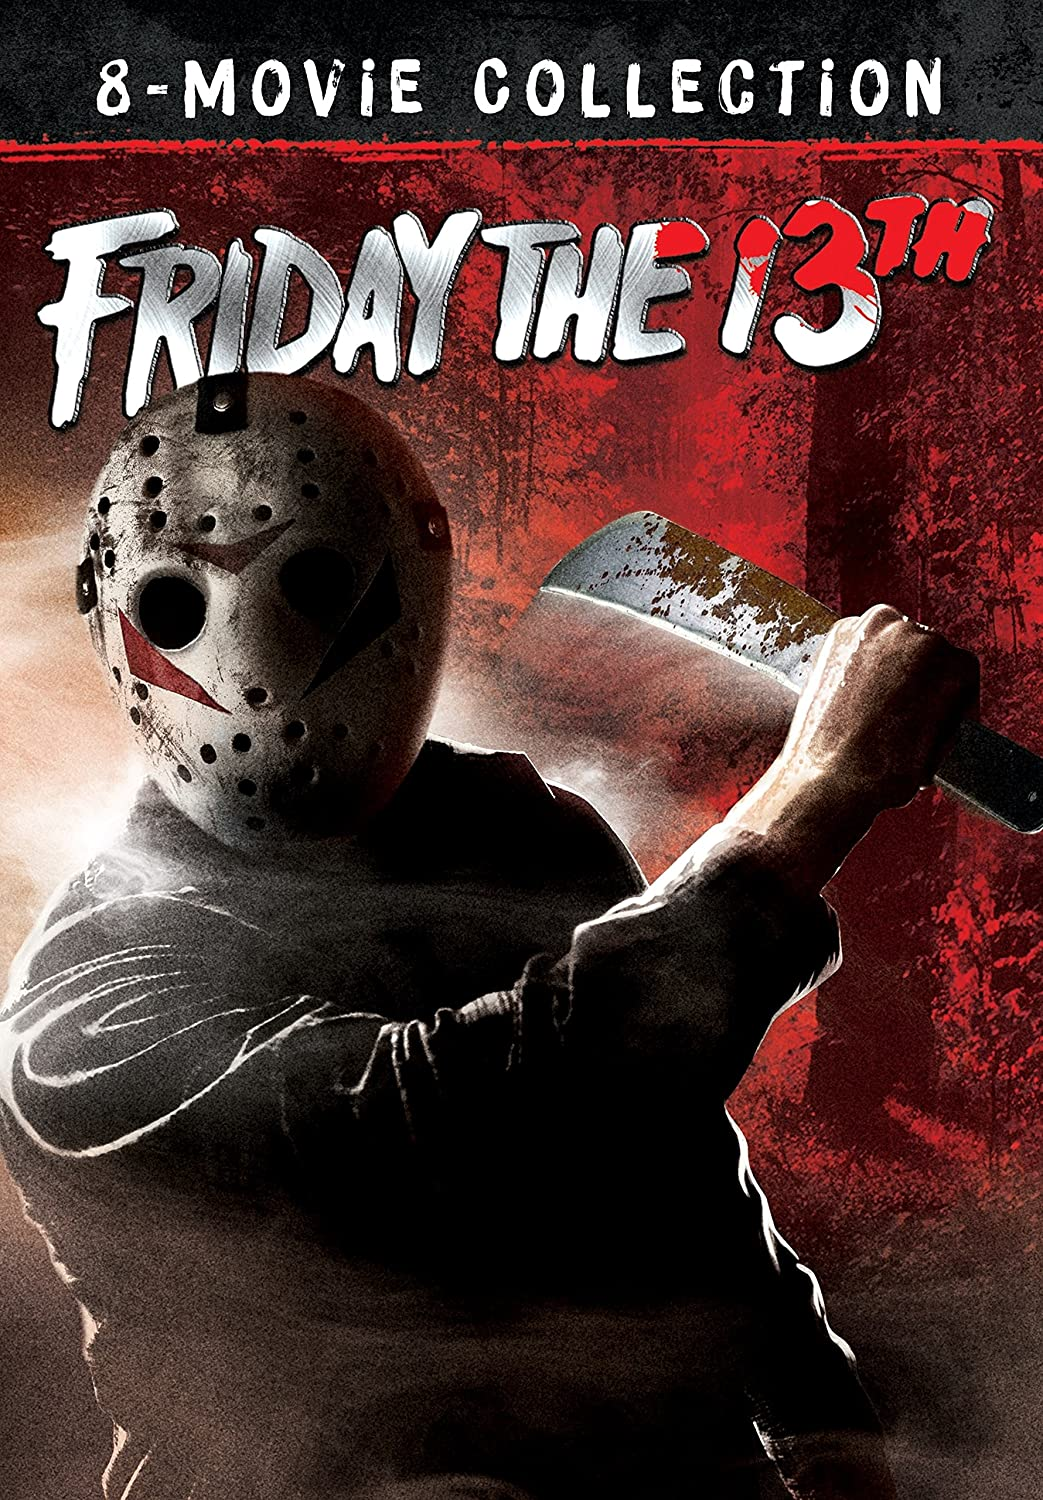 Friday The 13Th: The Ultimate Collection 8 Dvd Edizione: Stati Uniti Italia: Amazon.es: Kevin Bacon, Adrienne King, Kevin Bacon, Adrienne King: Cine y Series TV